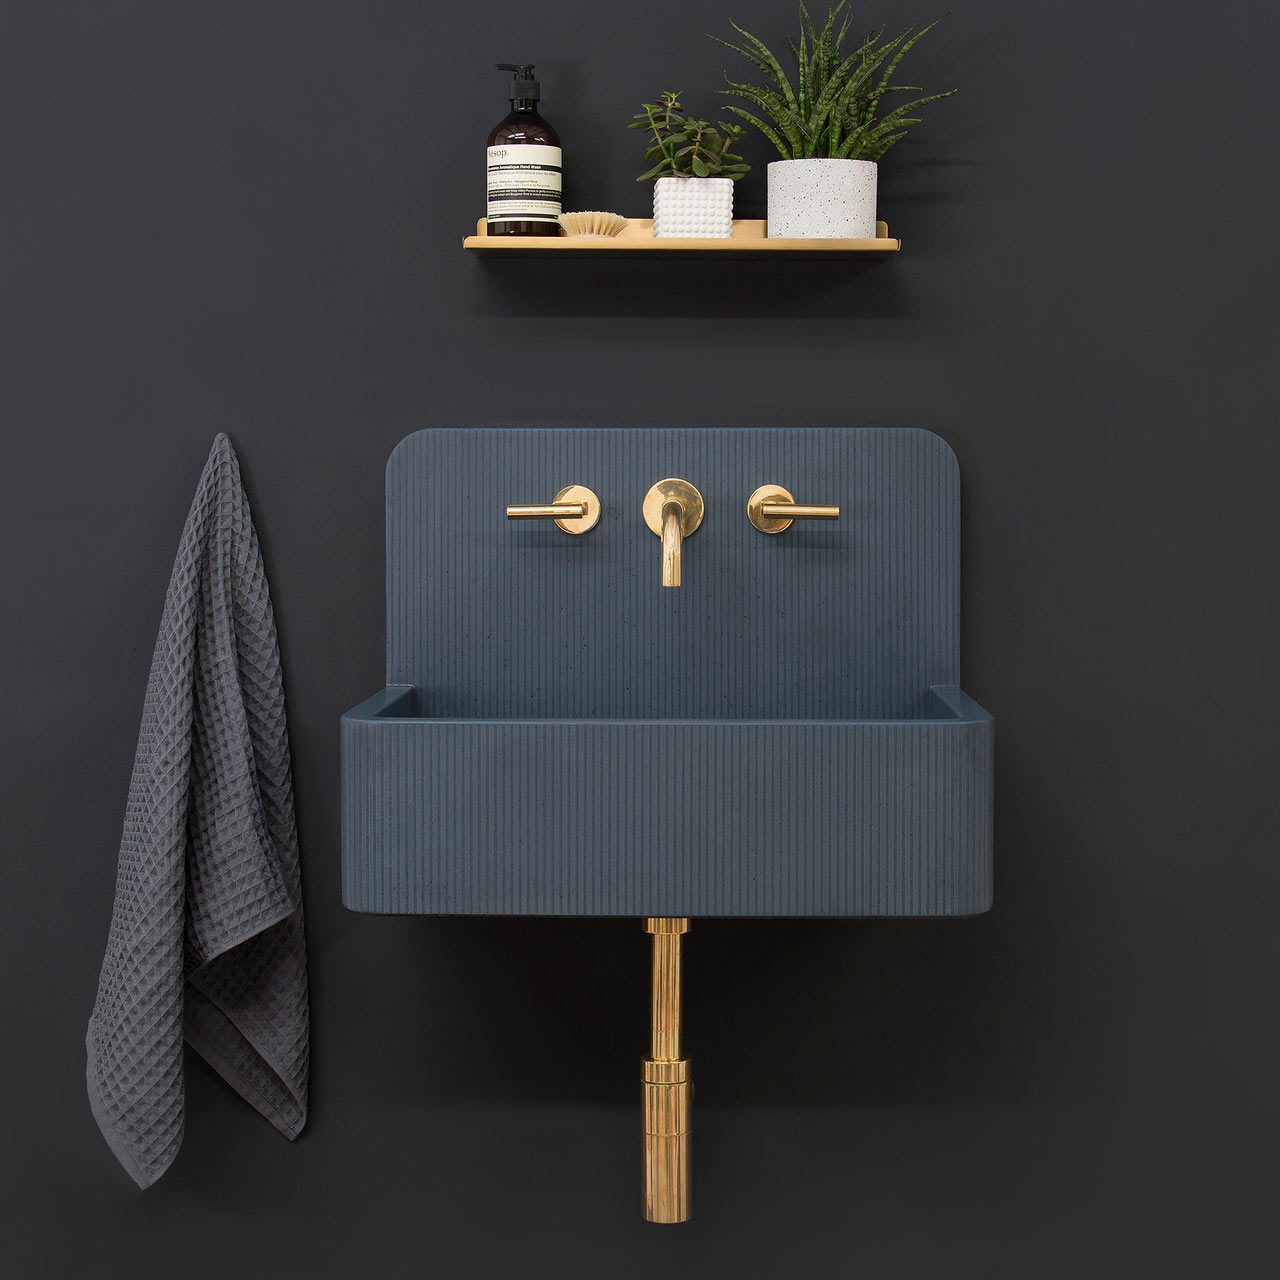 Populair Kast Launches Collection of Patterned Concrete Basins Called Kast  @QD98